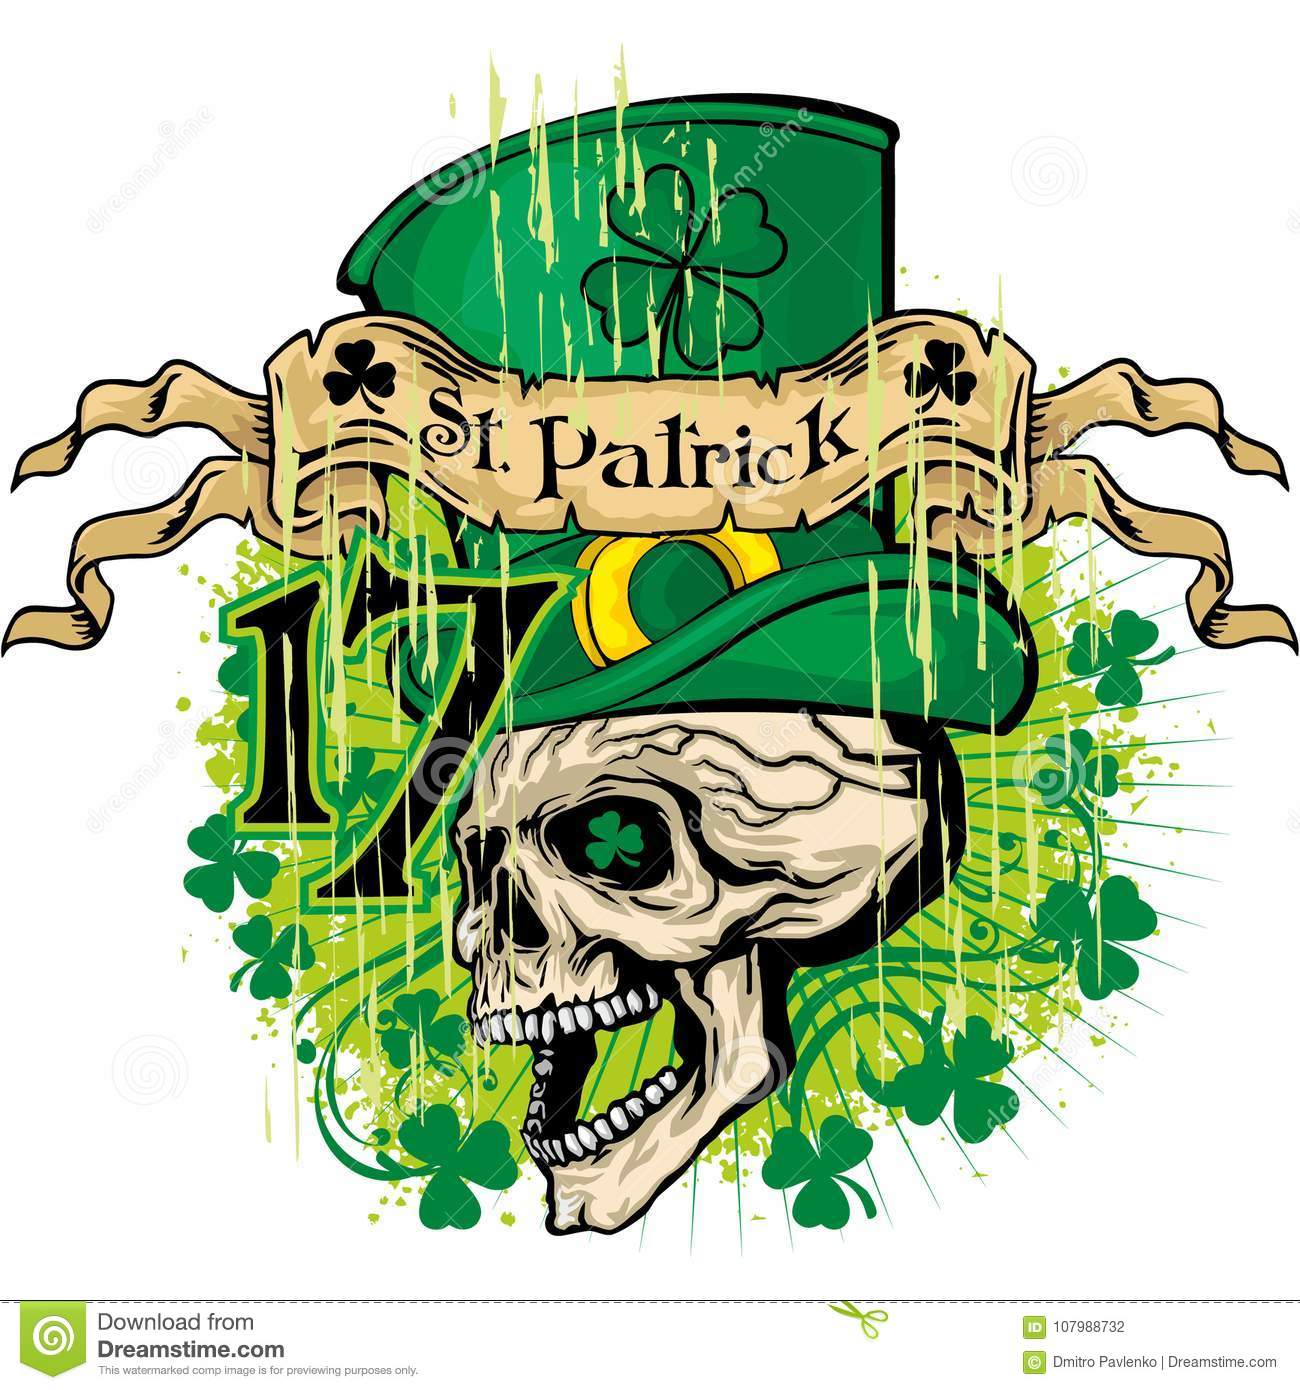 db11d9f93 Irish coat of arms with skull and clover, grunge vintage design t shirts.  More similar stock illustrations